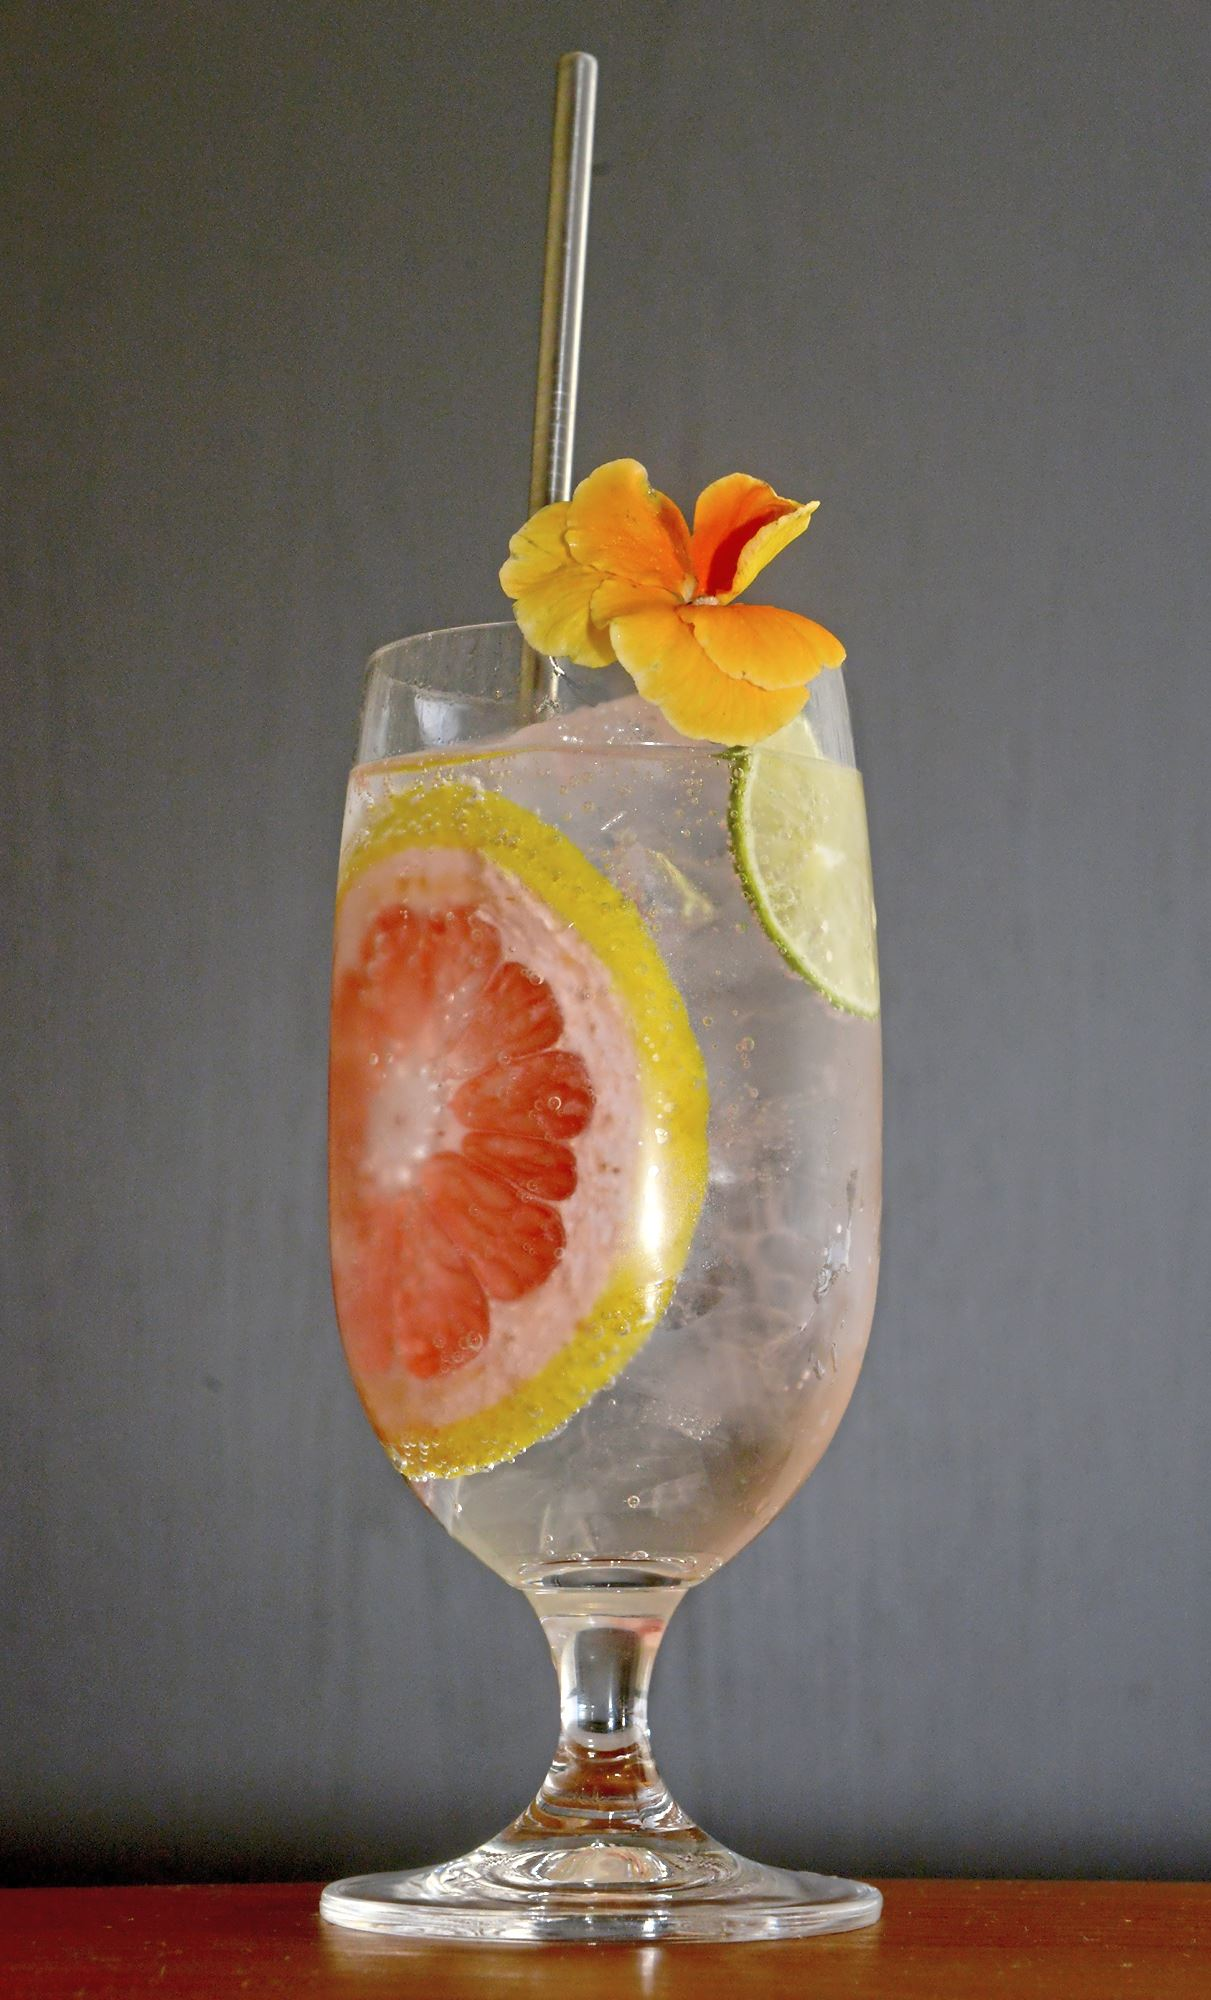 20171101ppTheWhale11MAG-1 A house gin and tonic with Bombay Sapphire gin, sugar, house tonic tincture and Natrona seltzer with a grapefruit and lime wheel prepared at or, The Whale in the Distrikt Hotel, Downtown.